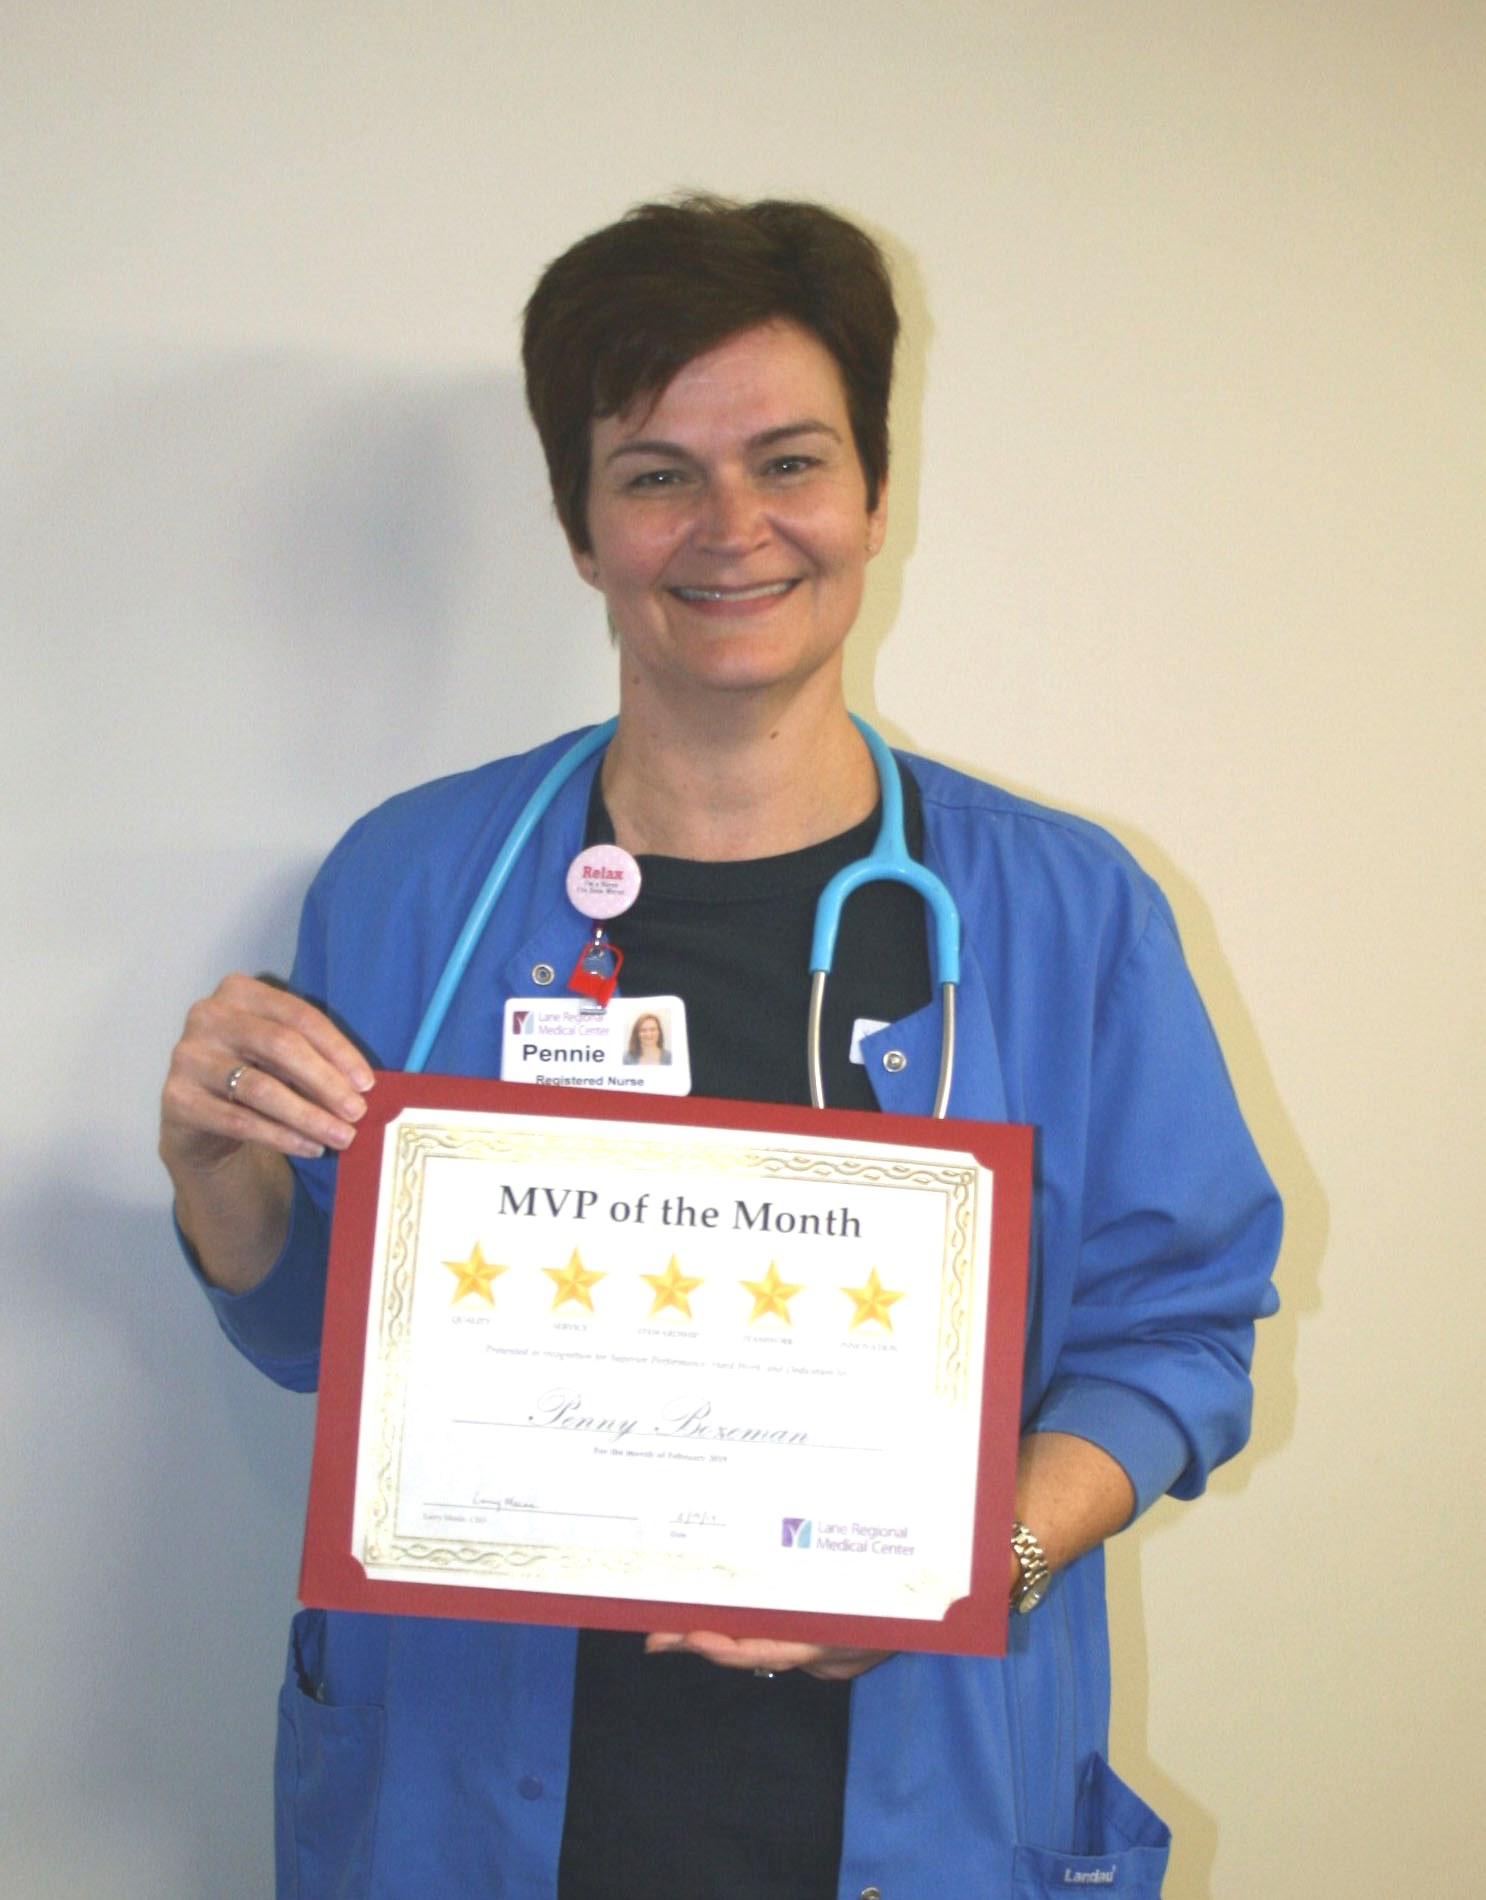 Pennie Bozeman, RN, Named February MVP